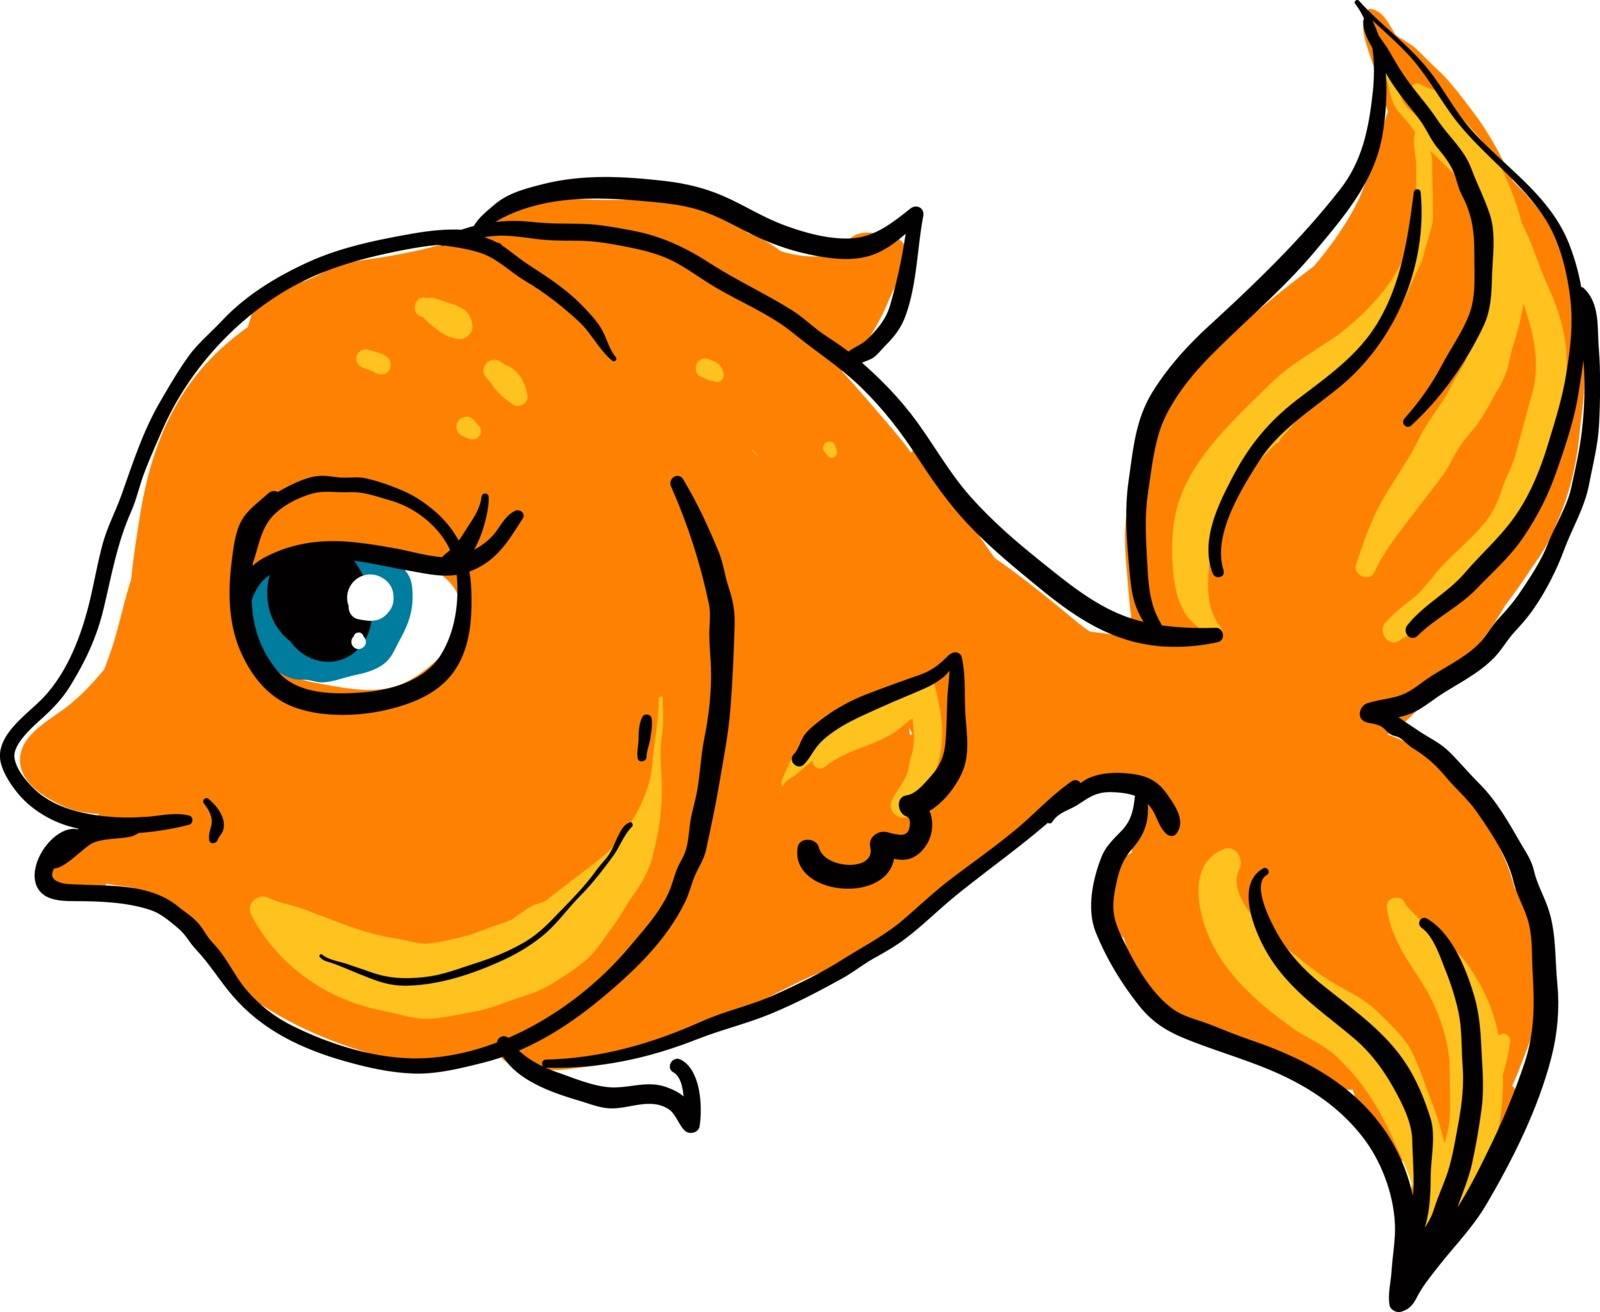 Happy gold fish, illustration, vector on white background.